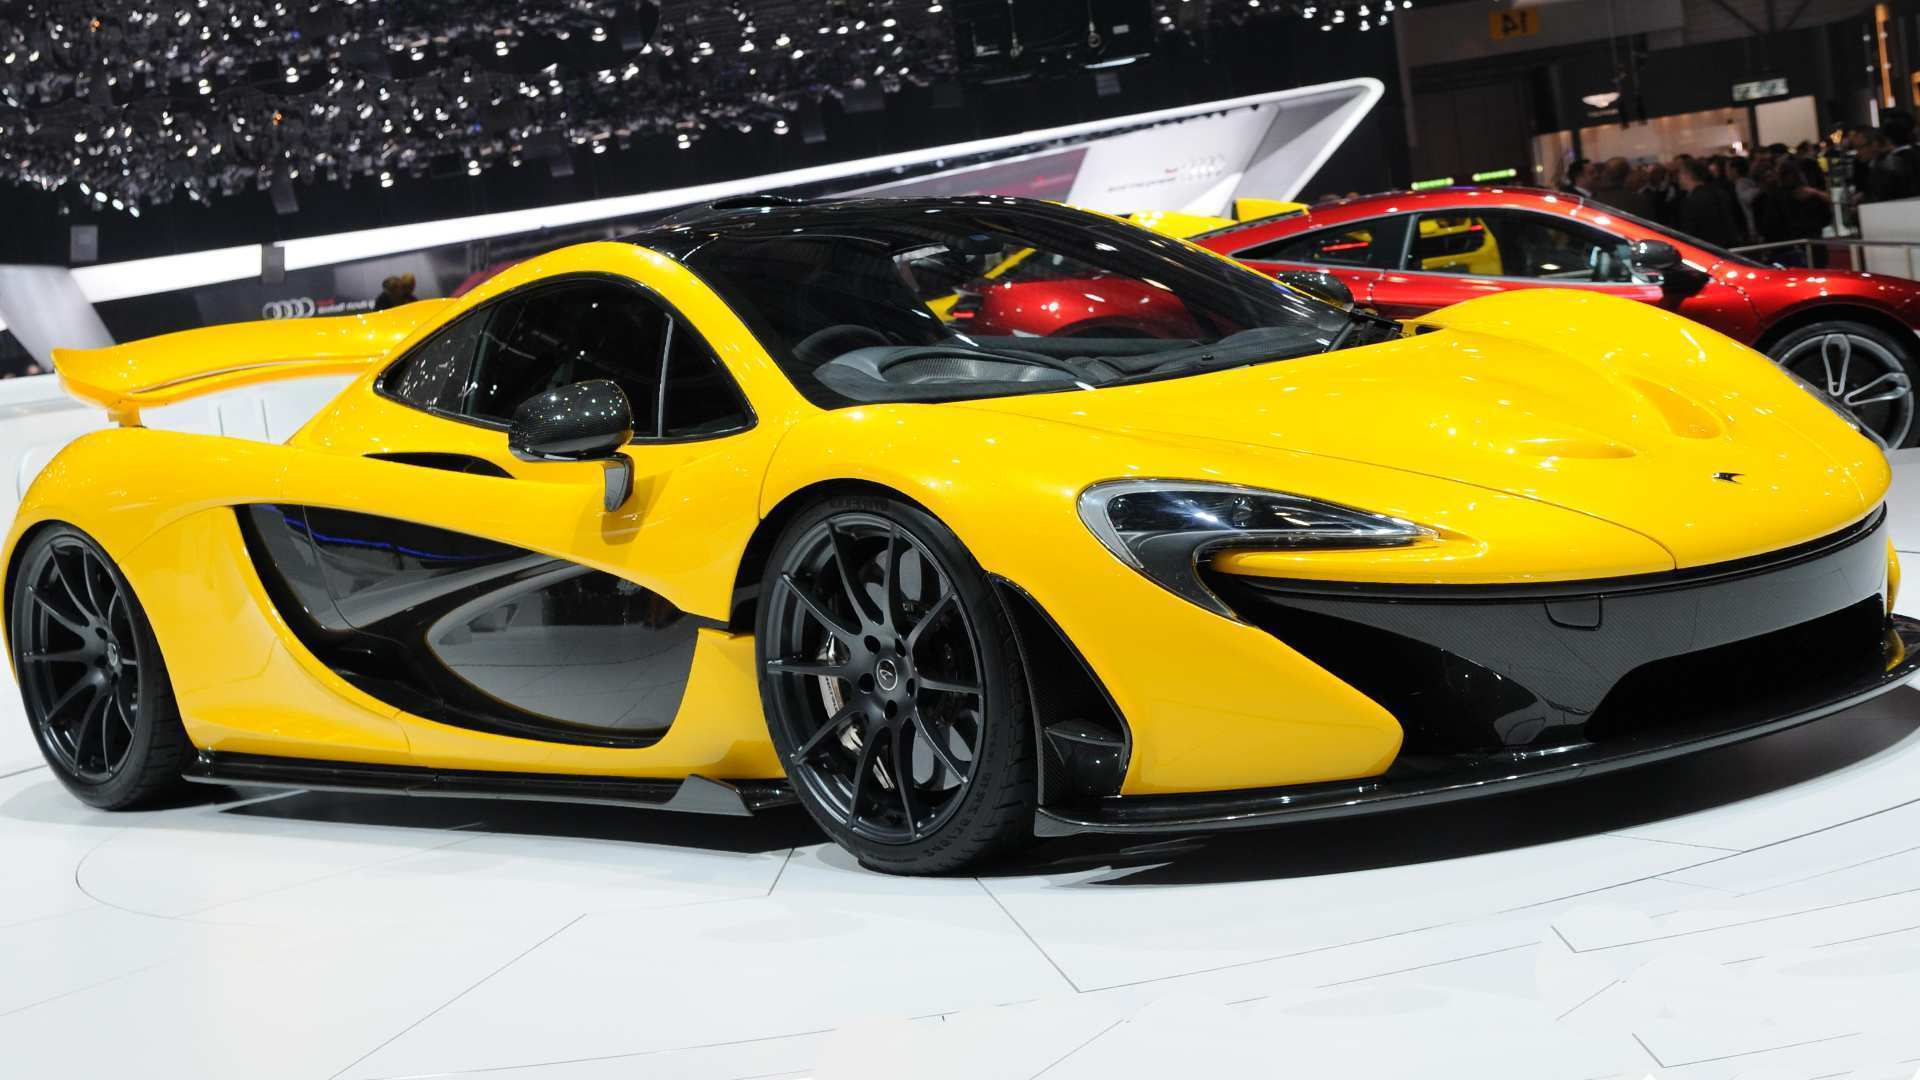 69 Best Review 2019 Mclaren P1 Price Images for 2019 Mclaren P1 Price